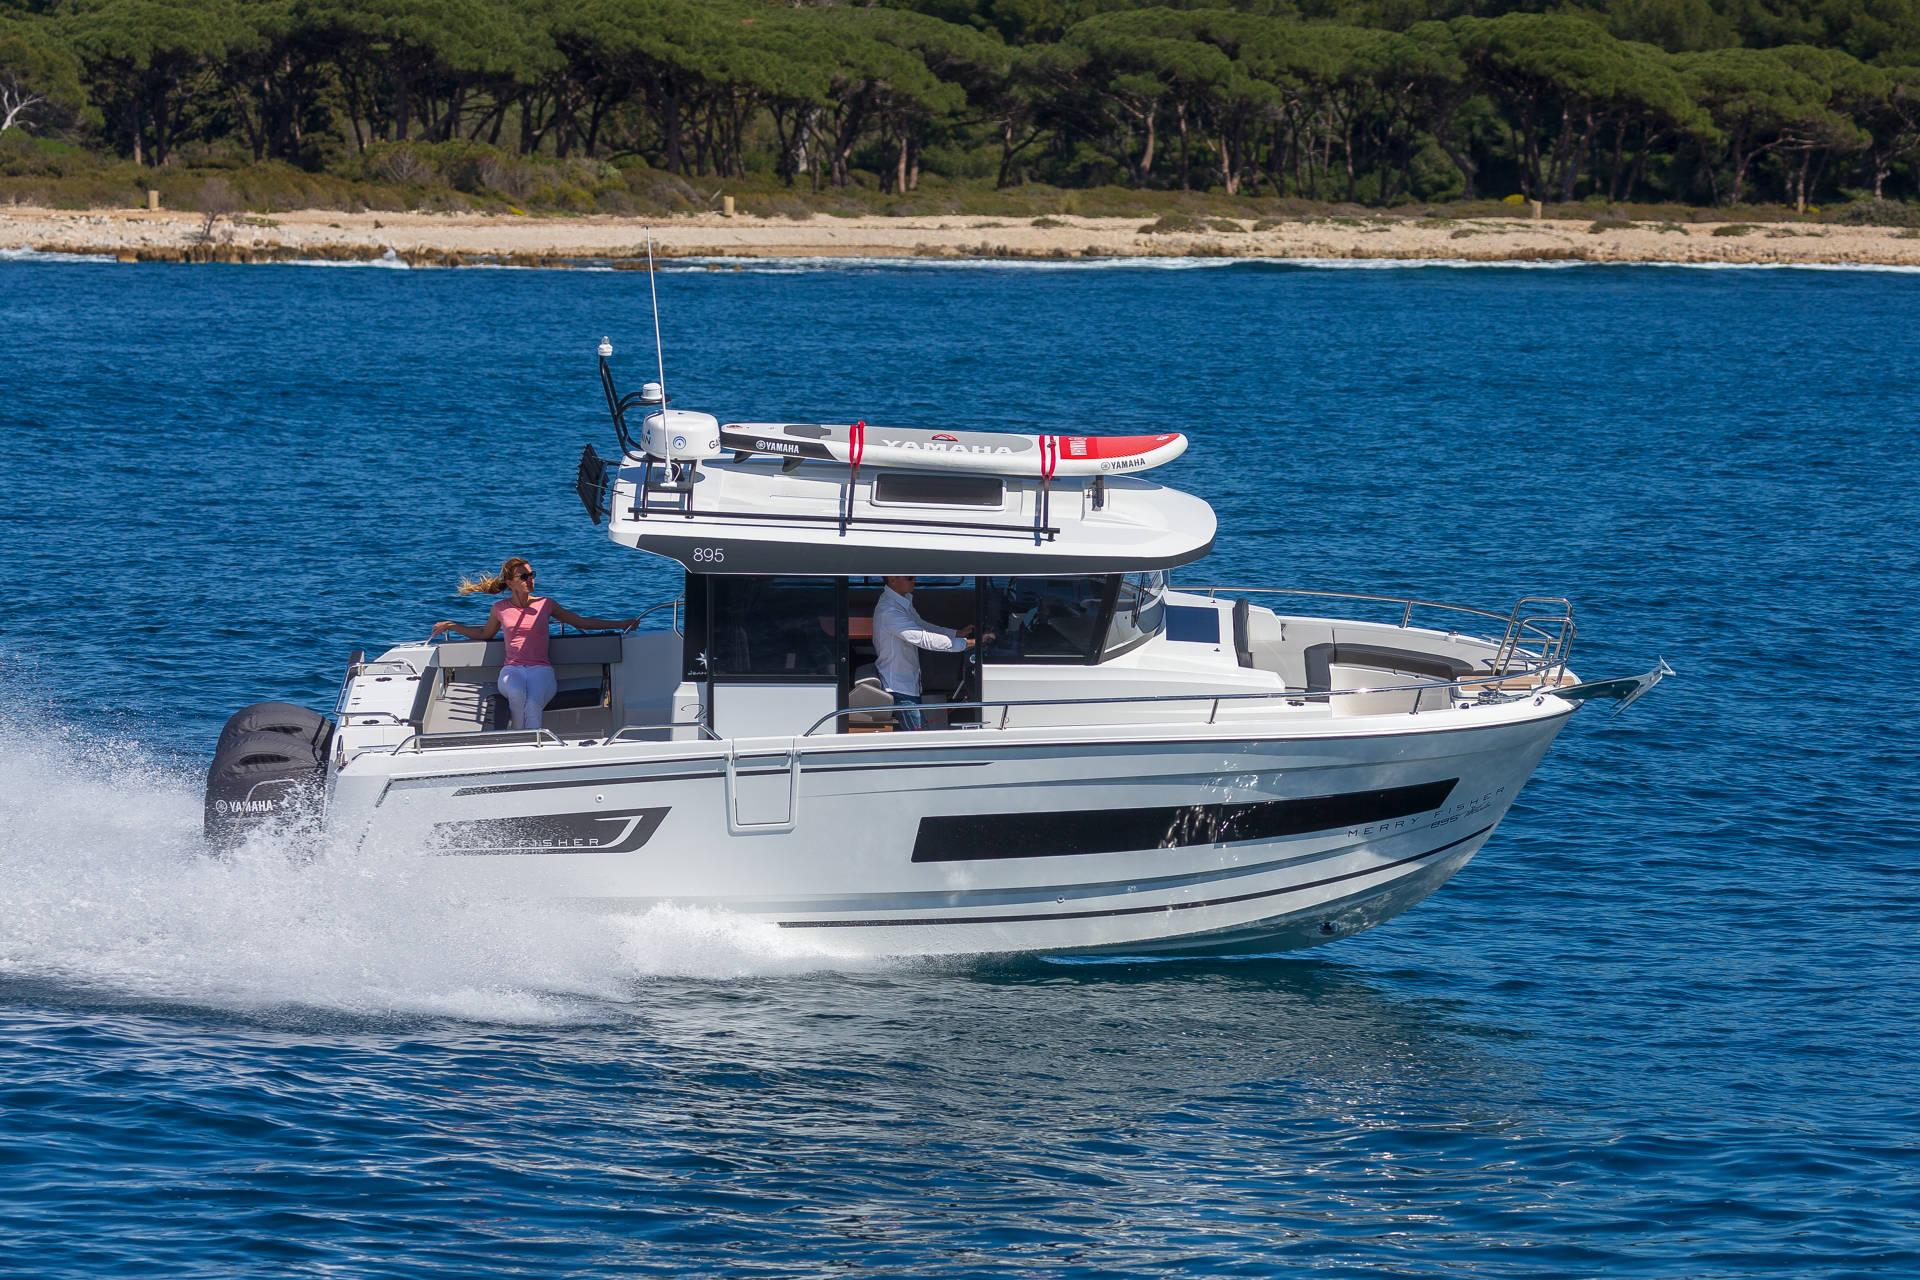 Le Merry Fisher 895 Marlin remporte le Motor Boat Awards